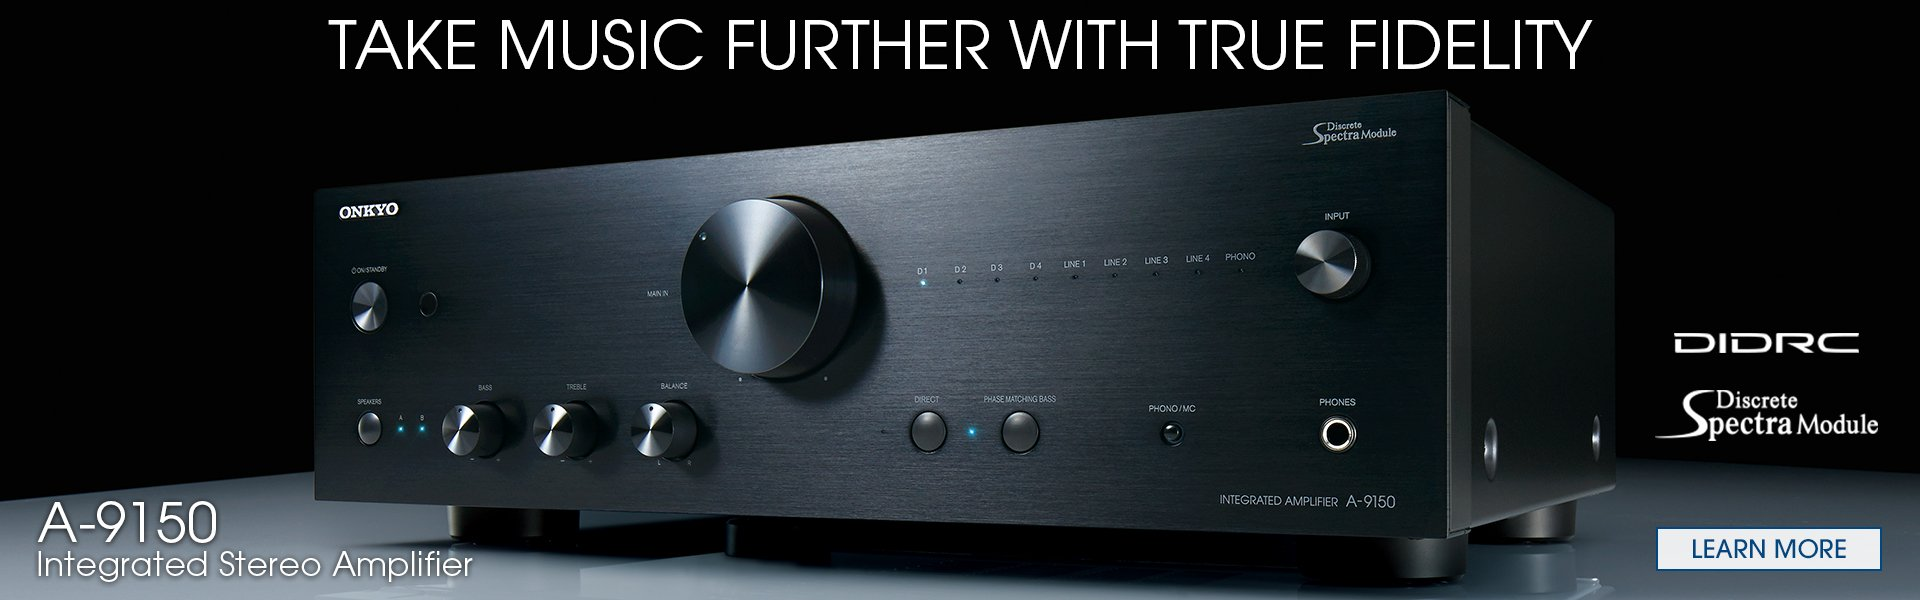 Take Music Further with True Fidelity